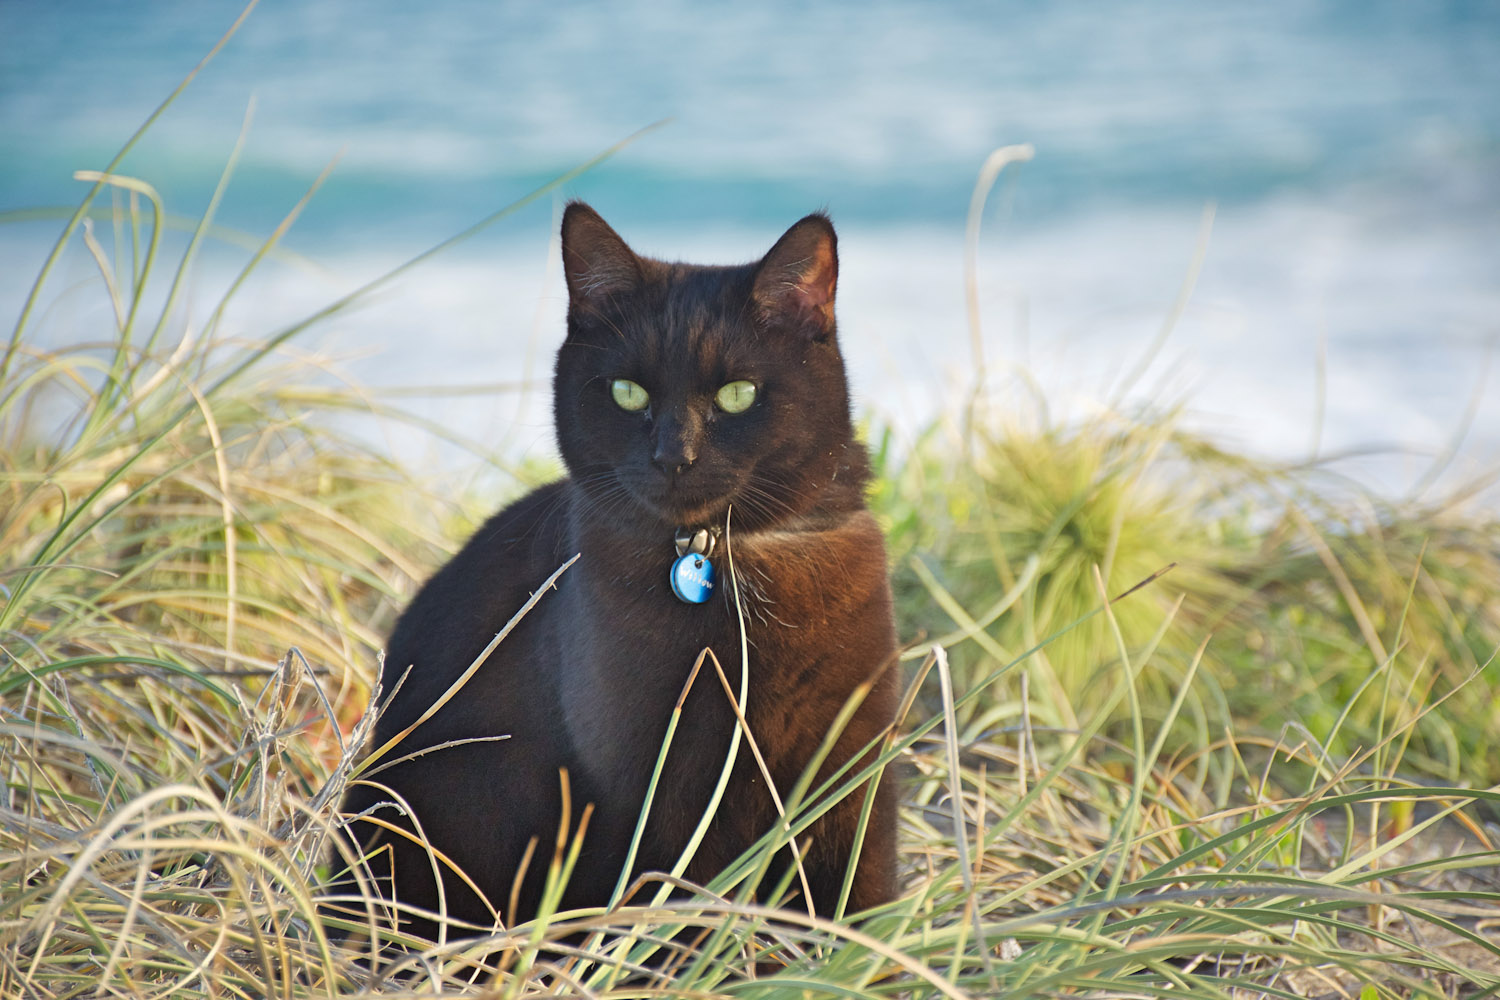 Willow van cat at beach